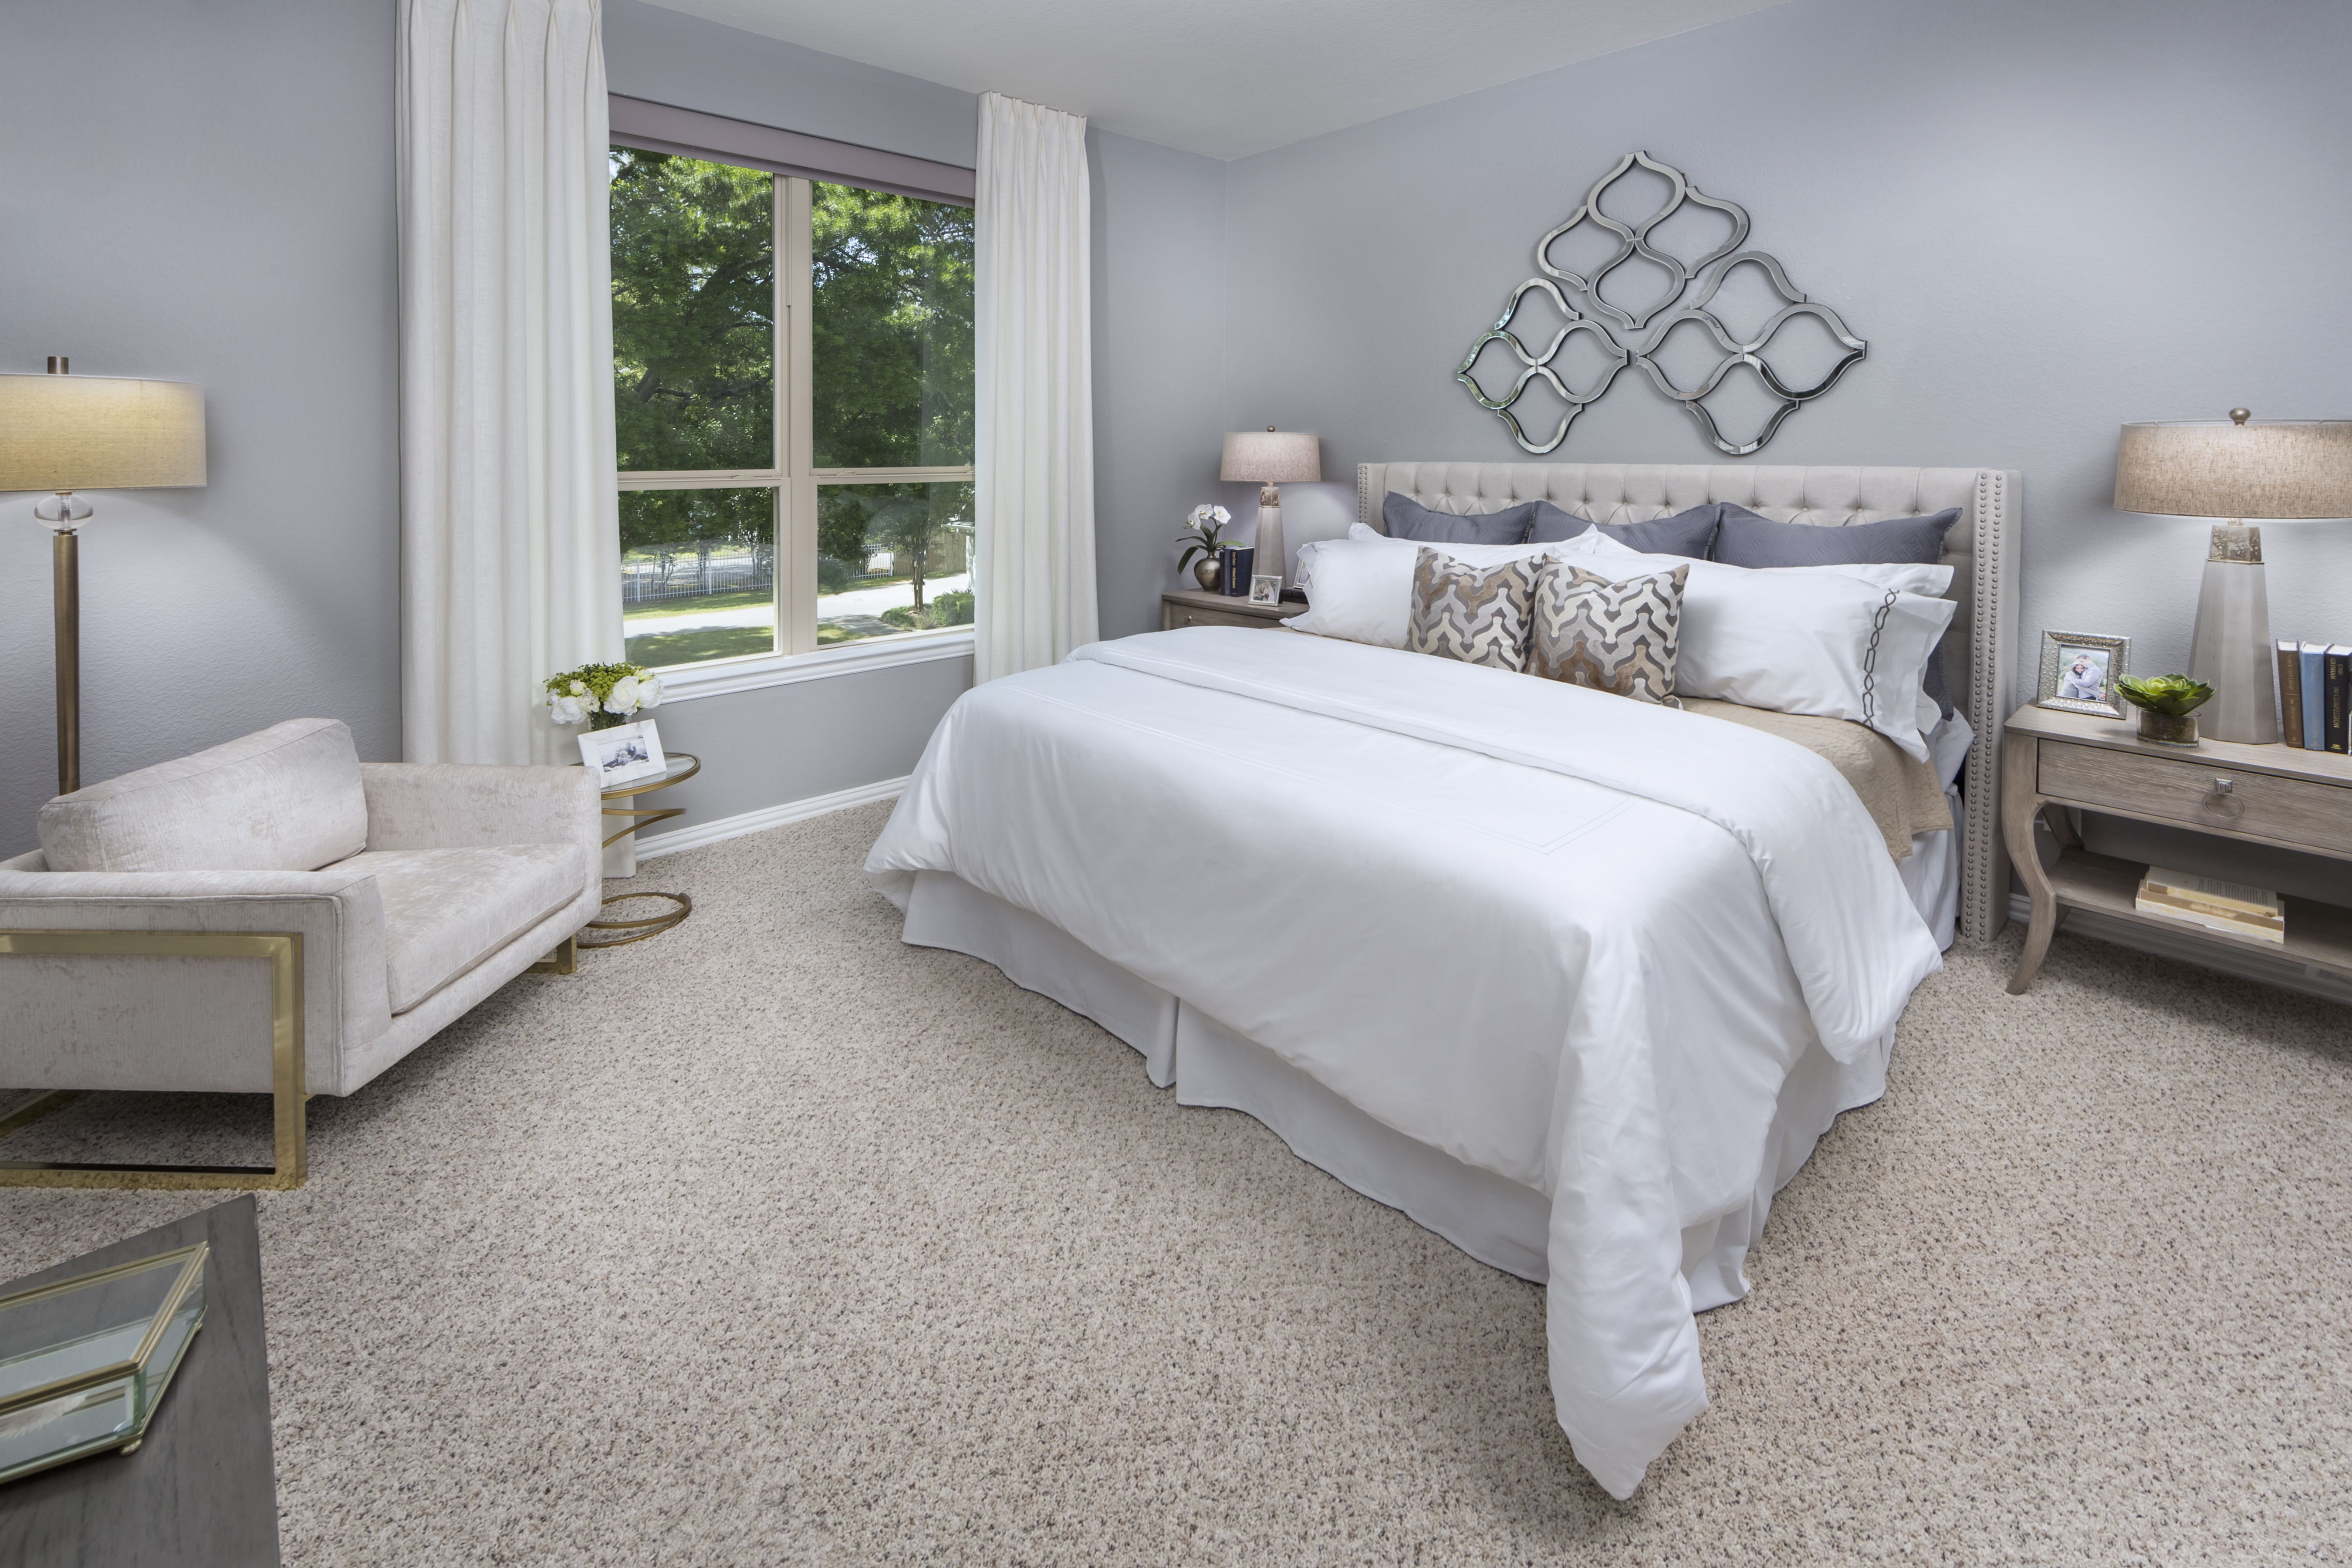 Wouldn't you like to lay and DREAM in a master suite this